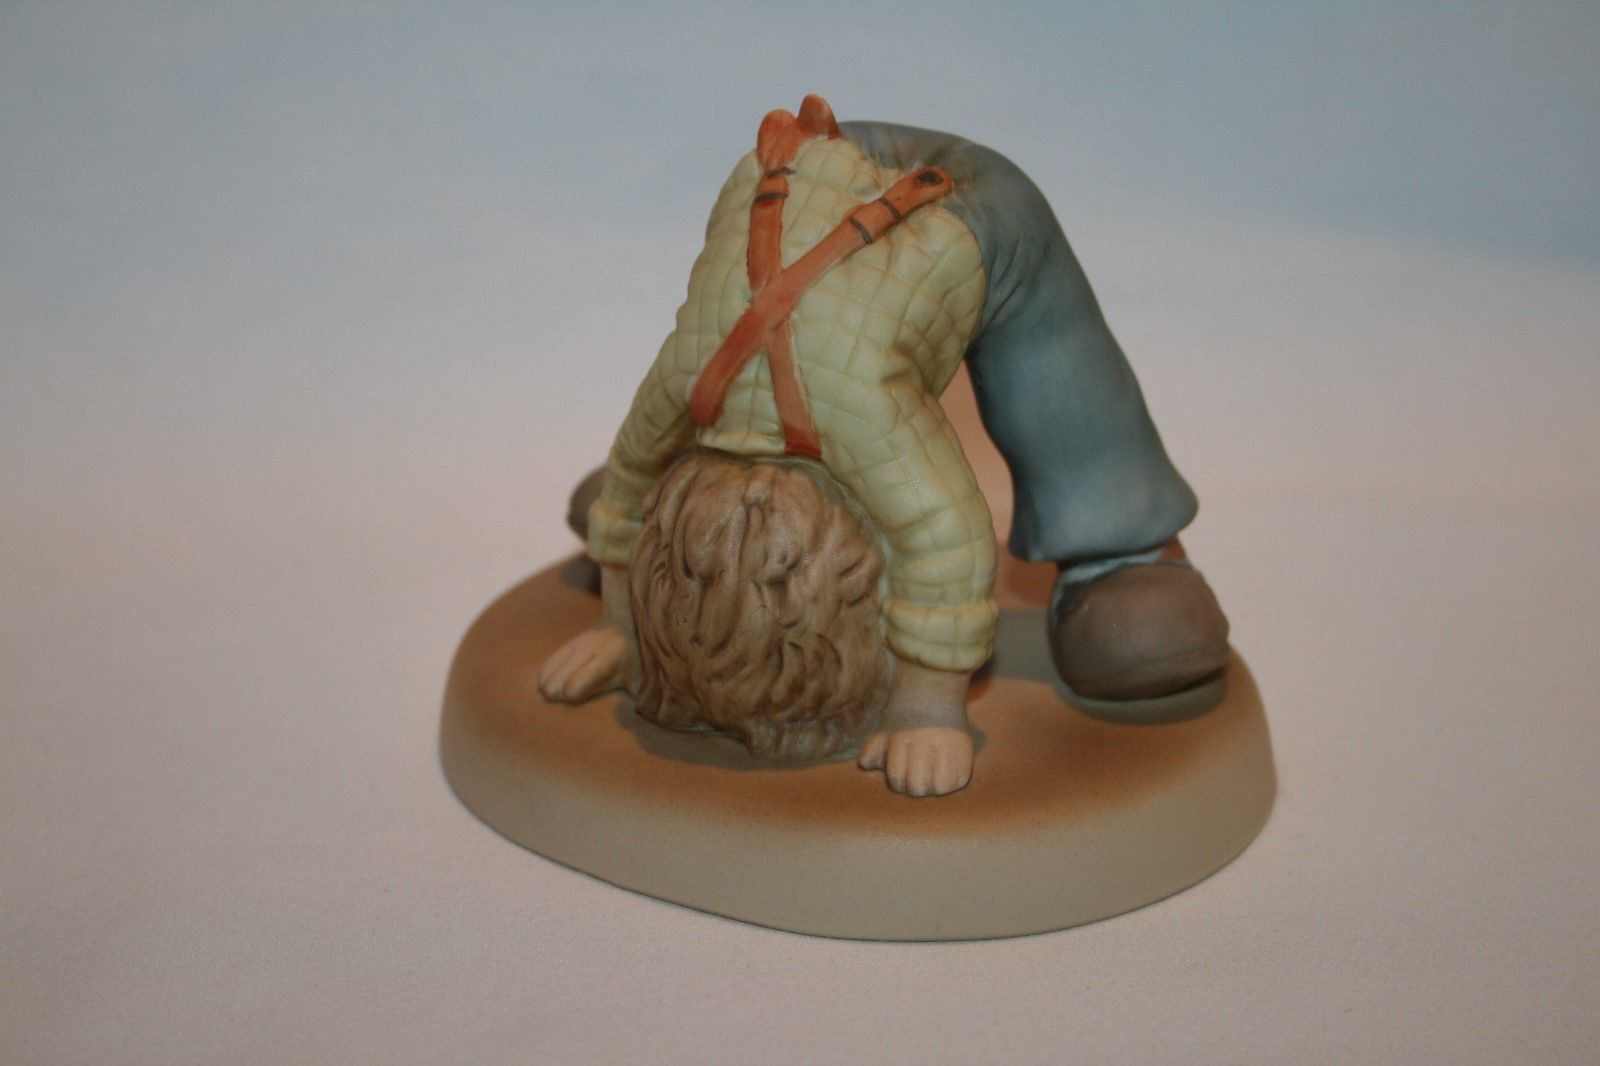 Memories Of Yesterday 1989 I'm Not As Backwards As I Look Figurine #523240 -MIB-